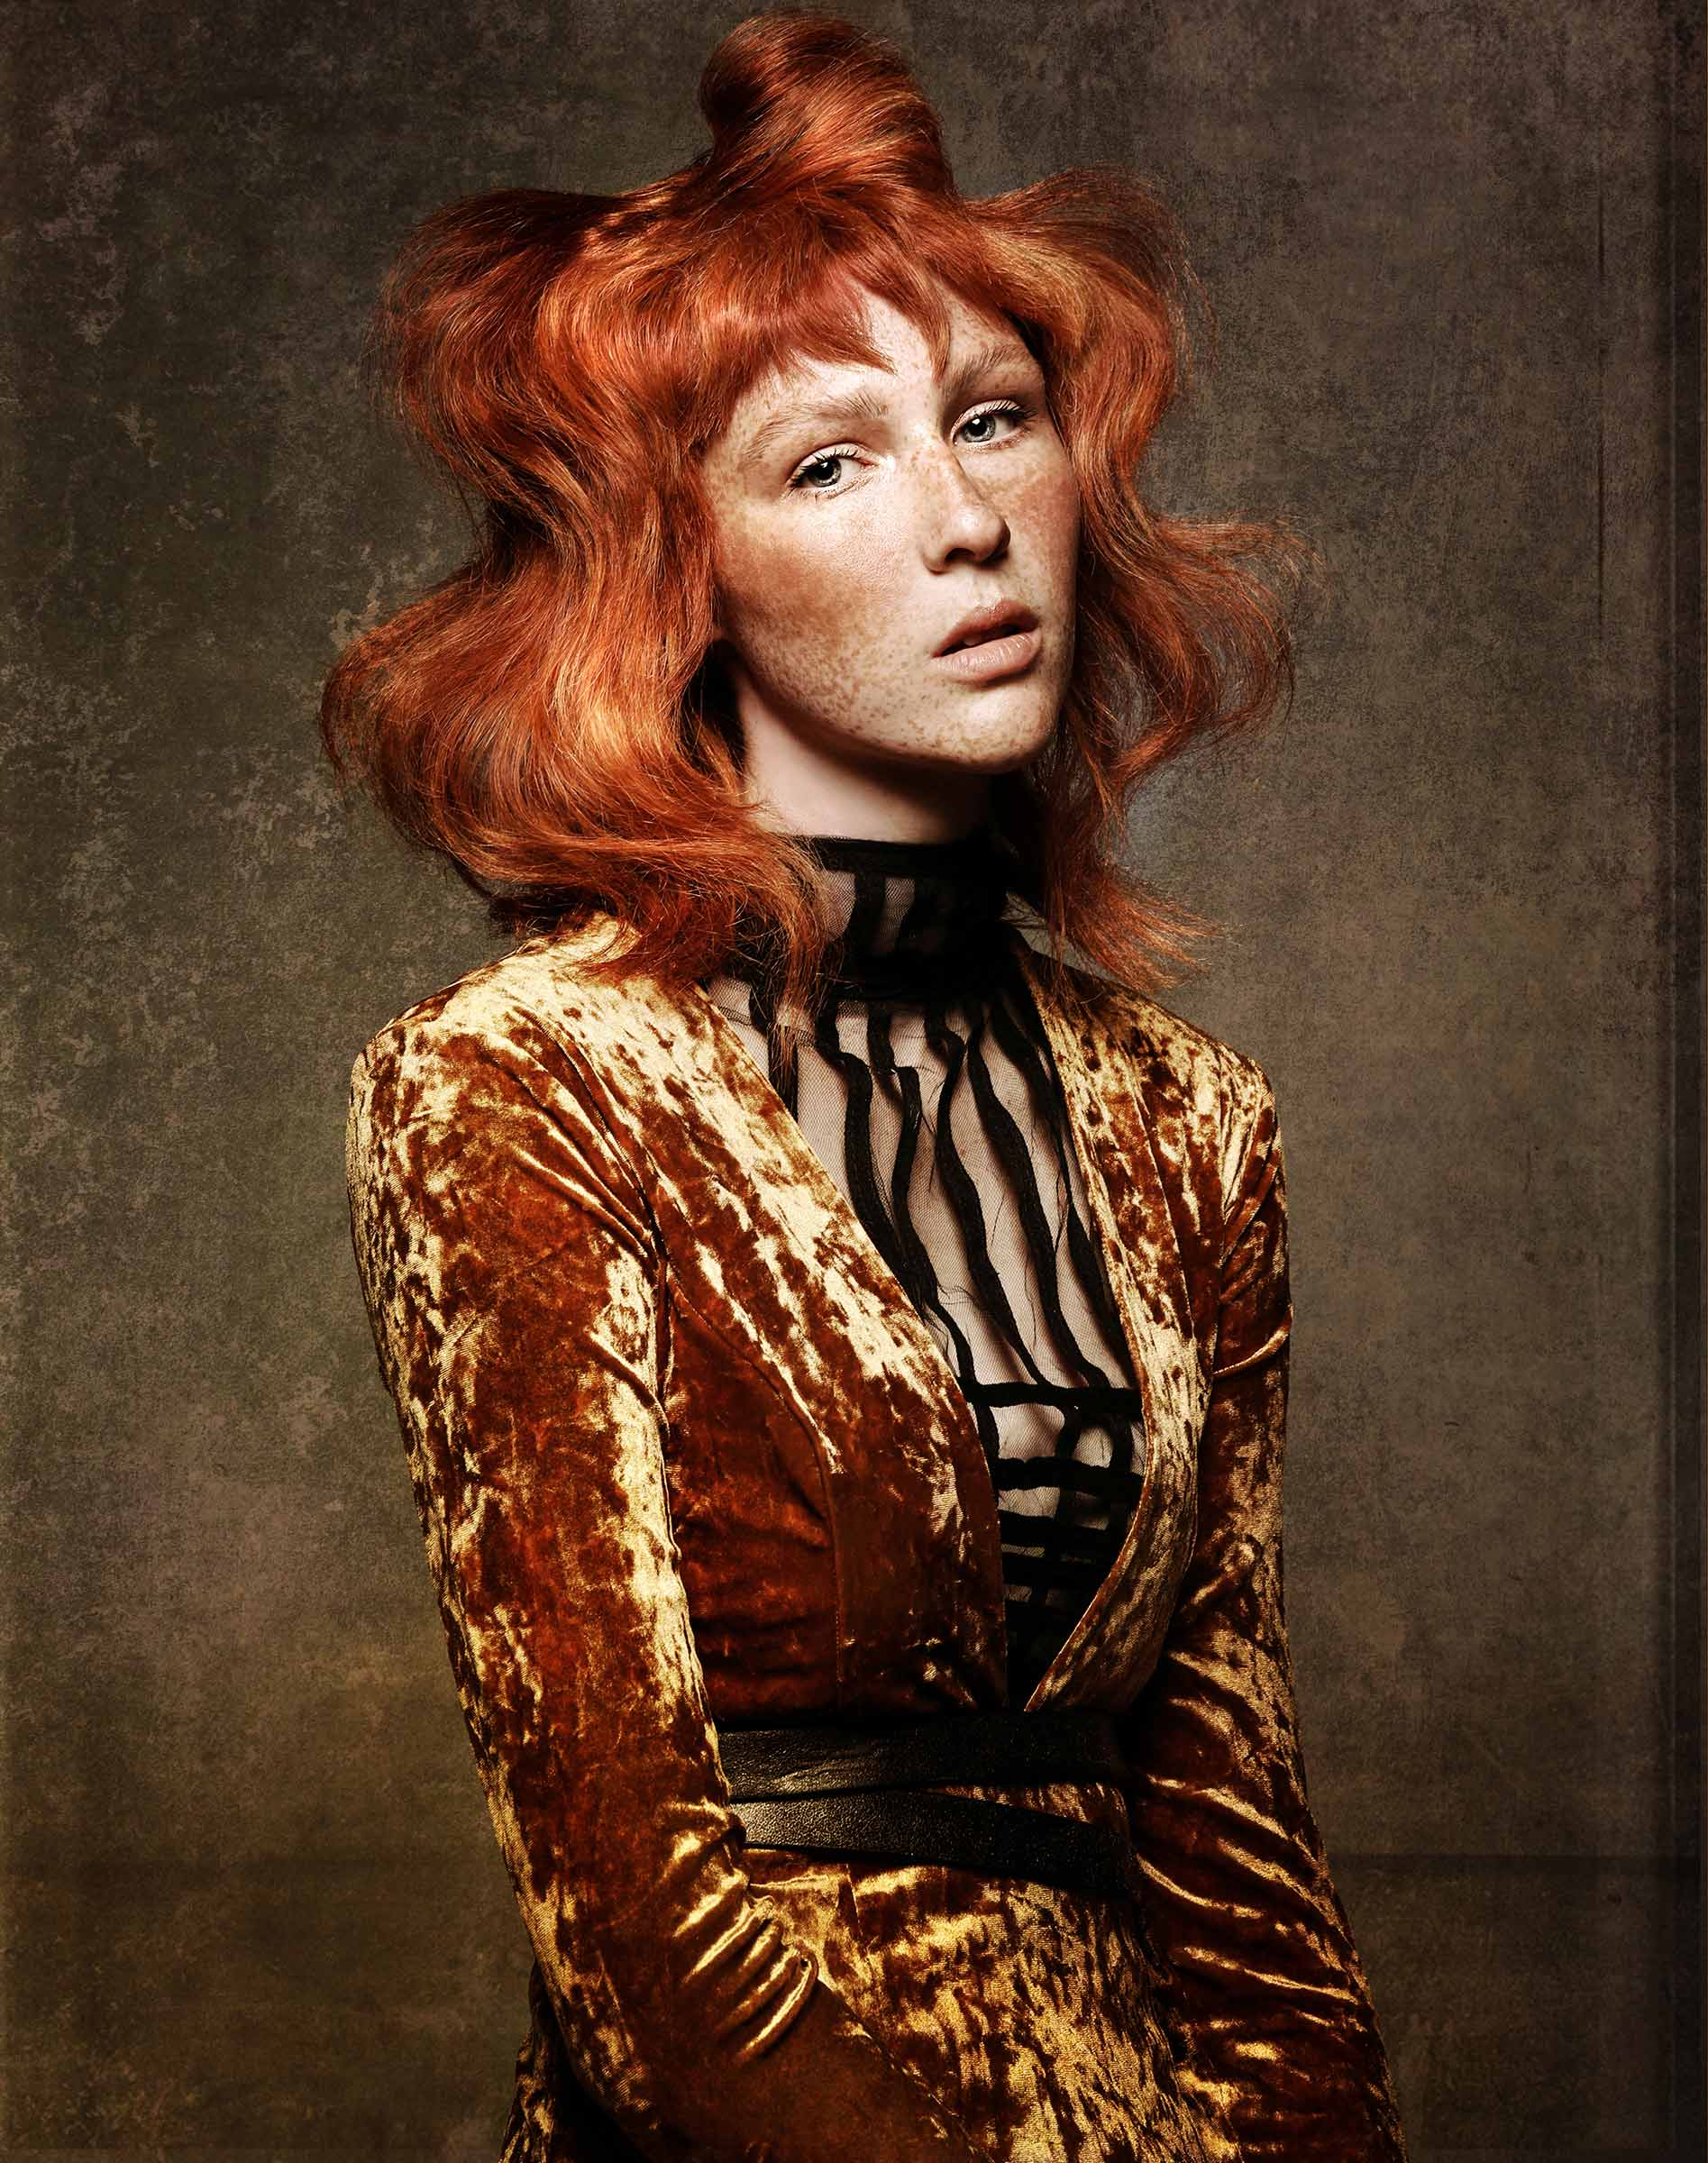 naha-winner-master-stylist-2020-redhead-freckles-julie-vriesinga-paula-tizzard-hair-collection